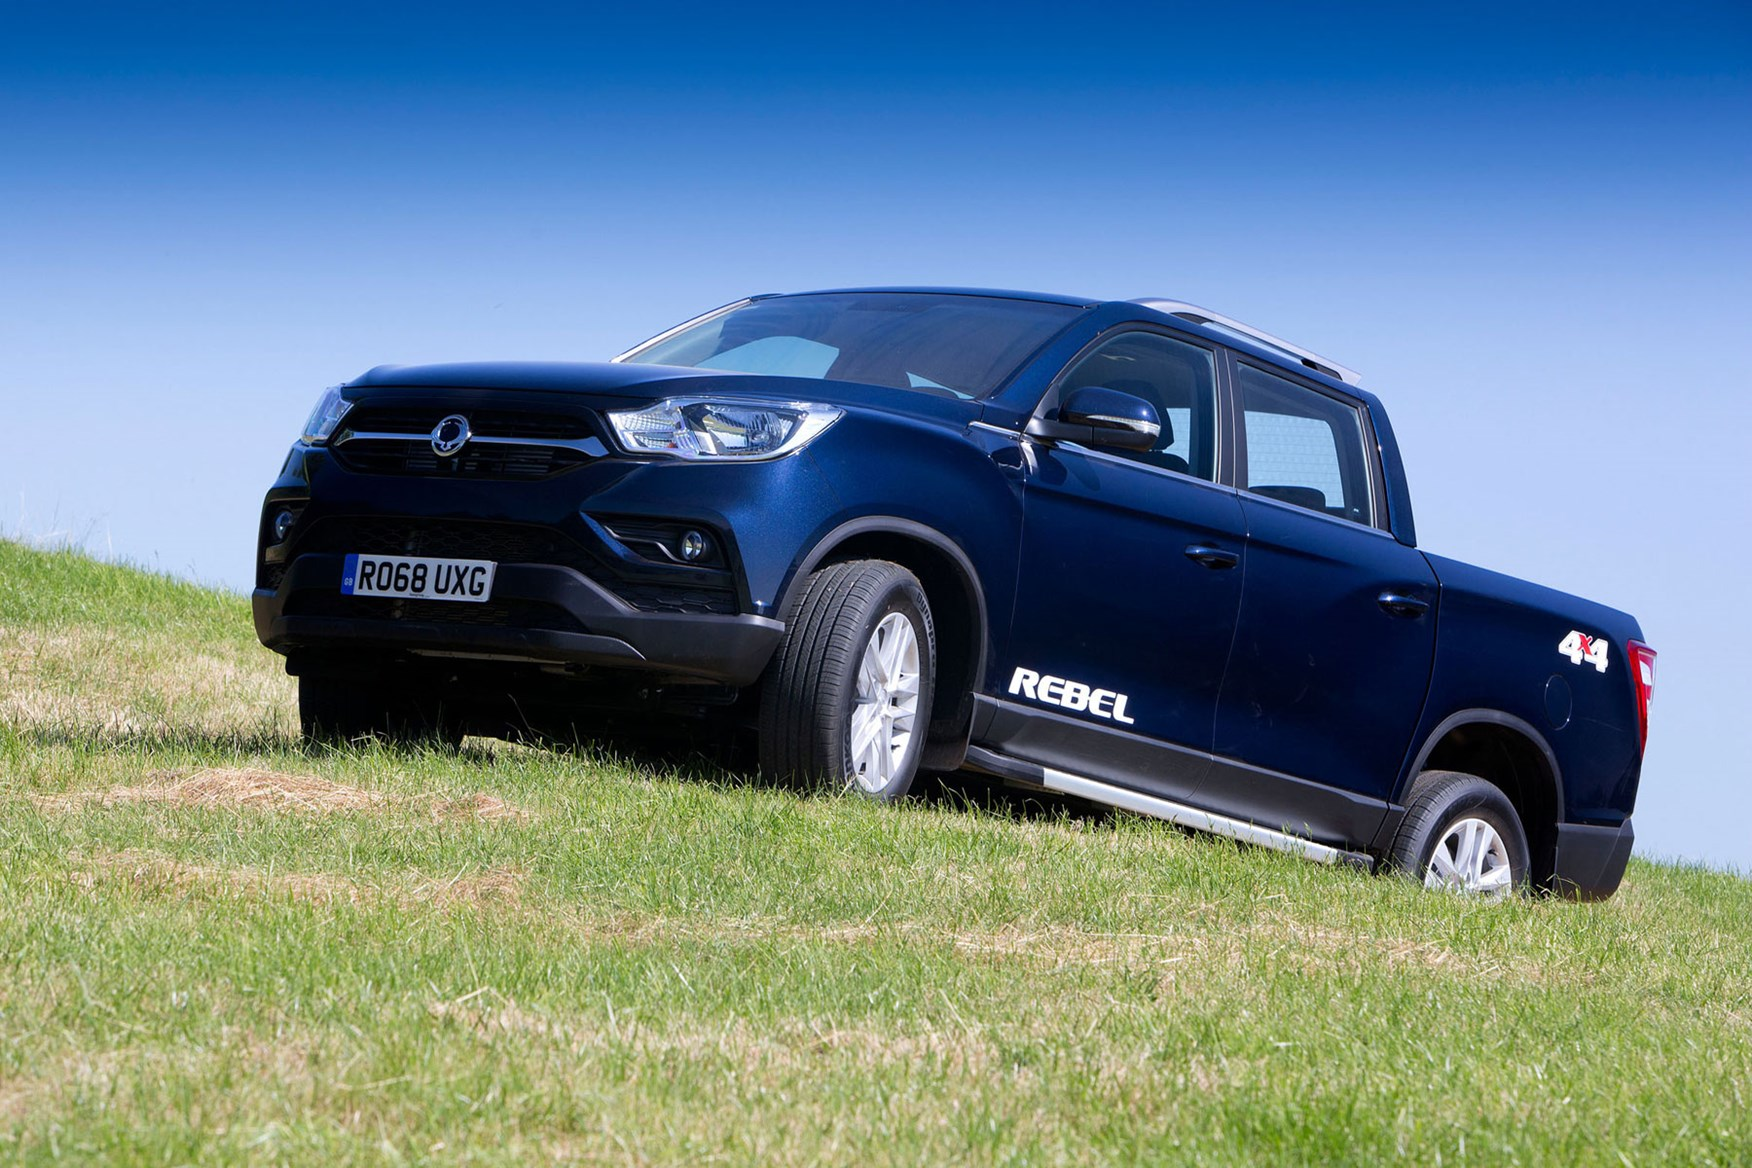 SsangYong Musso (2018-on) review, Rebel, front view, off-road, blue